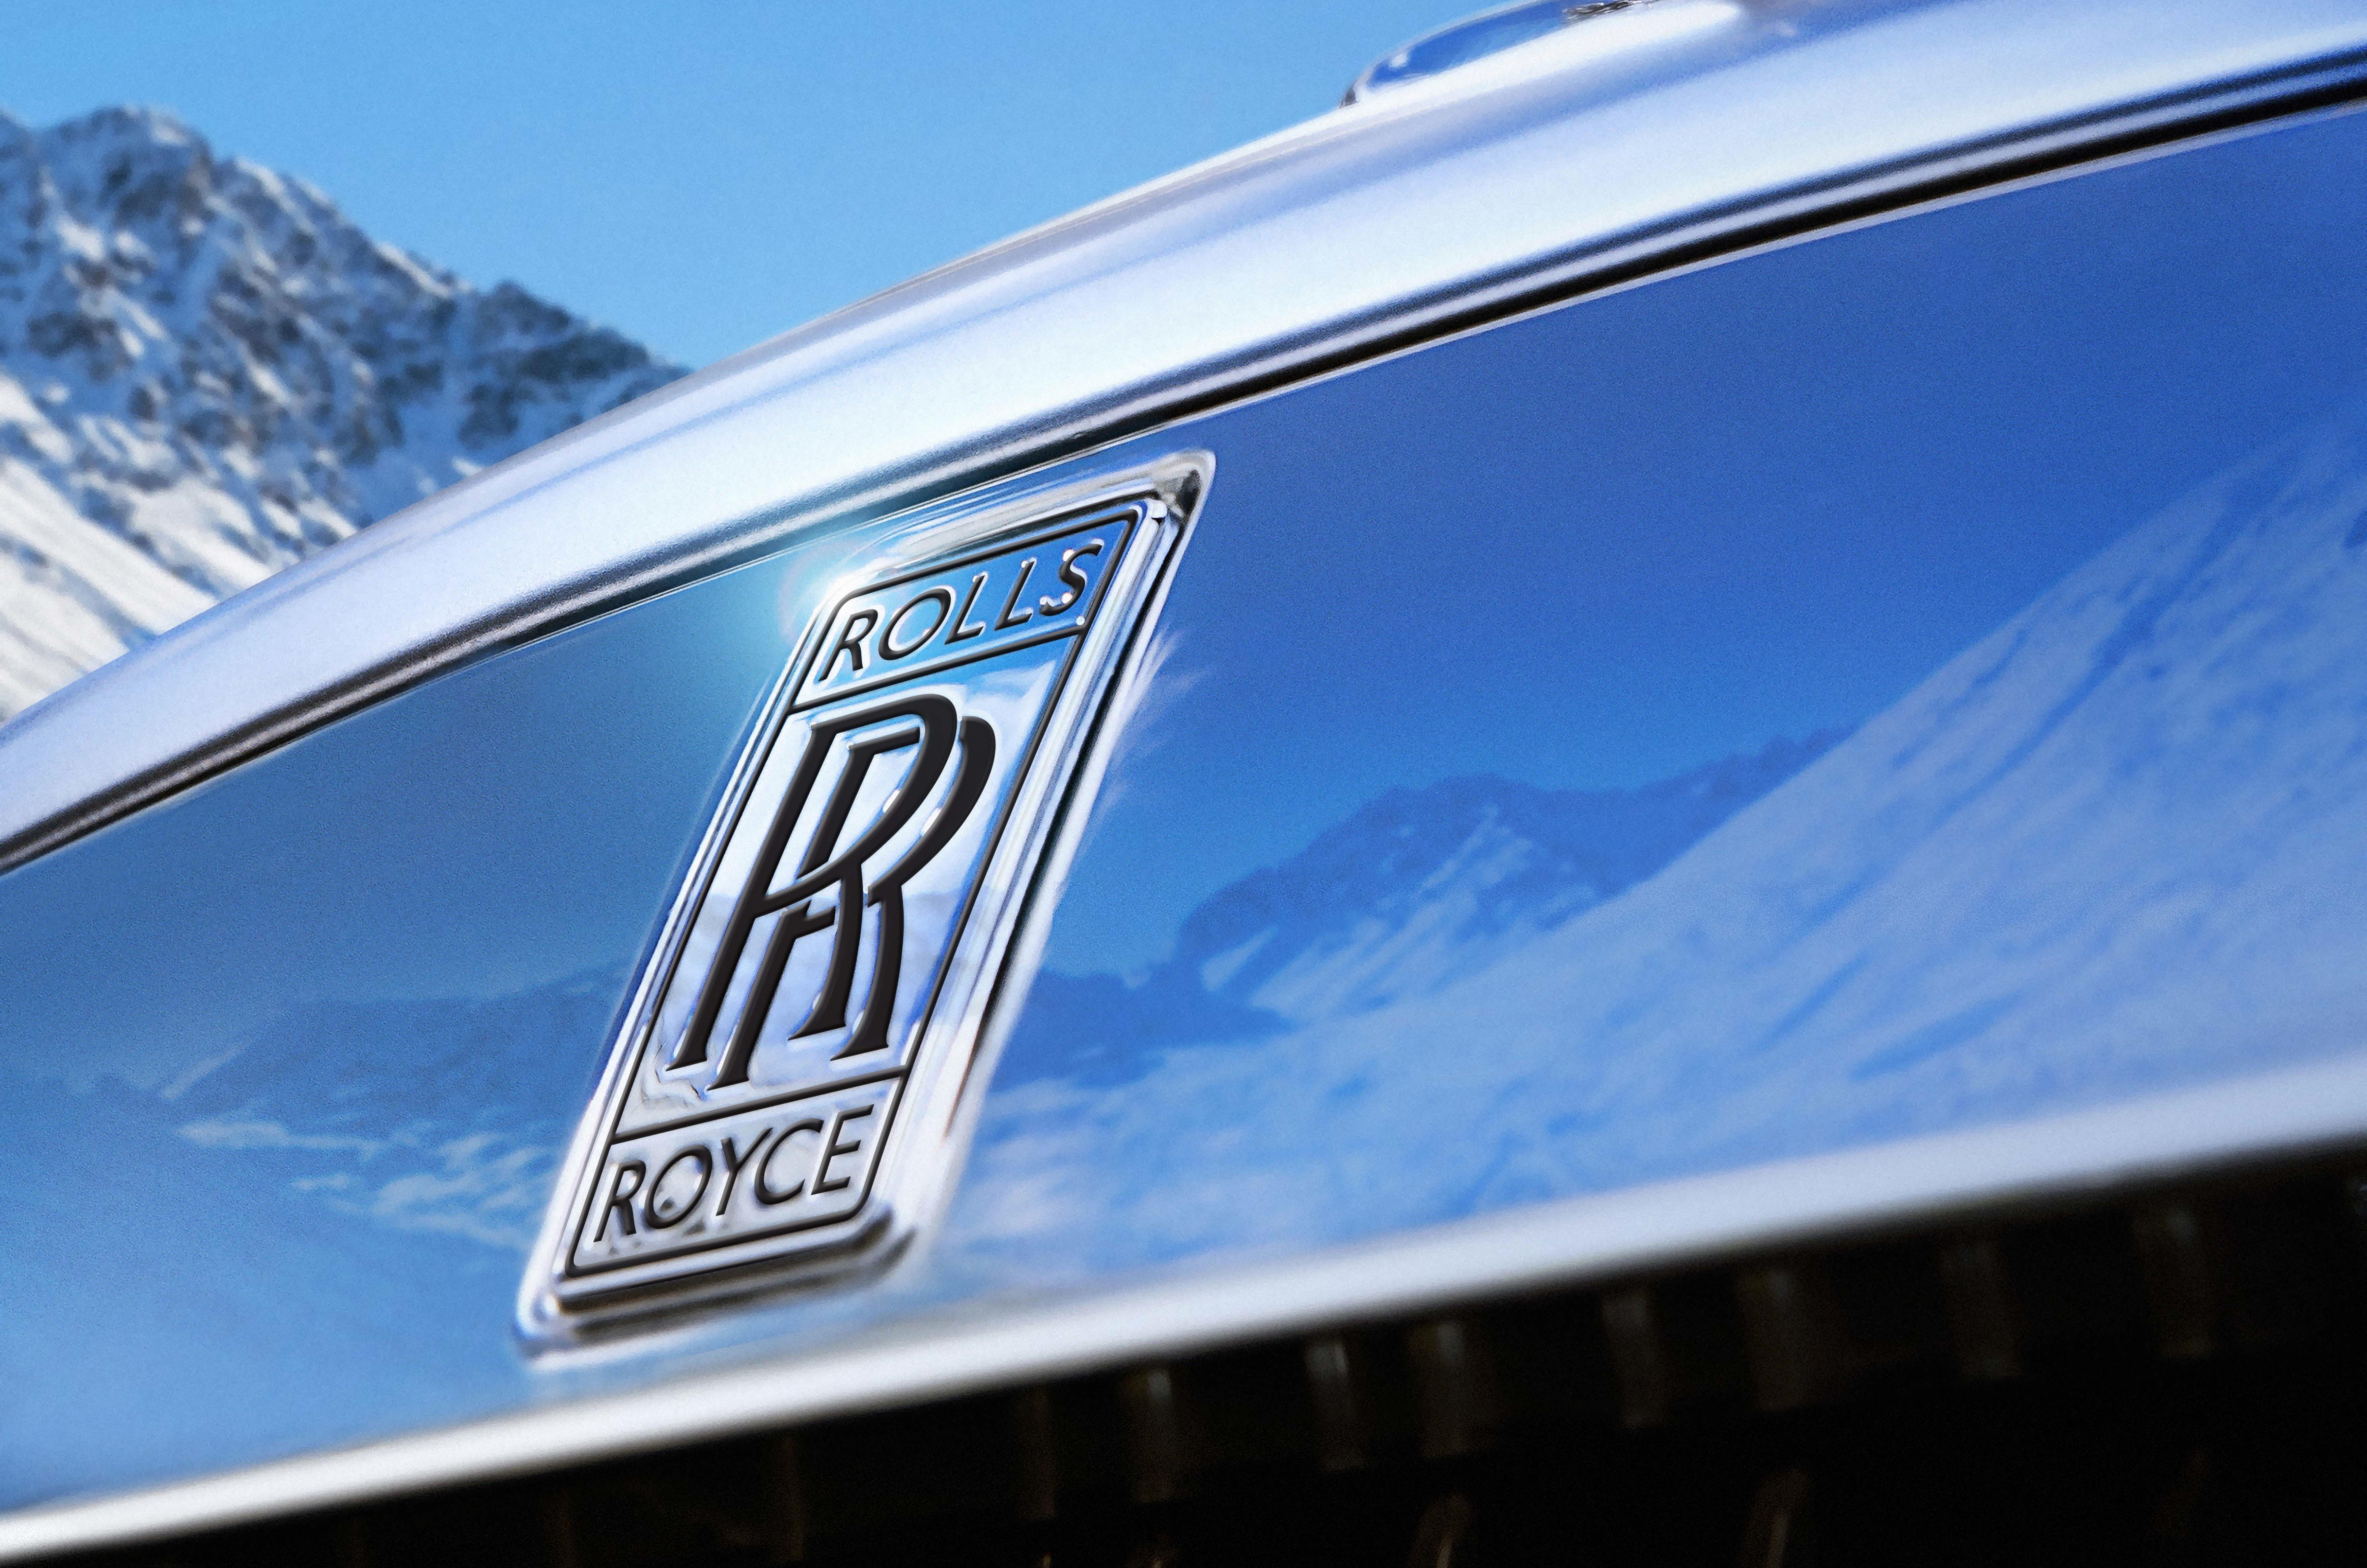 Rolls-Royce is building a super-SUV